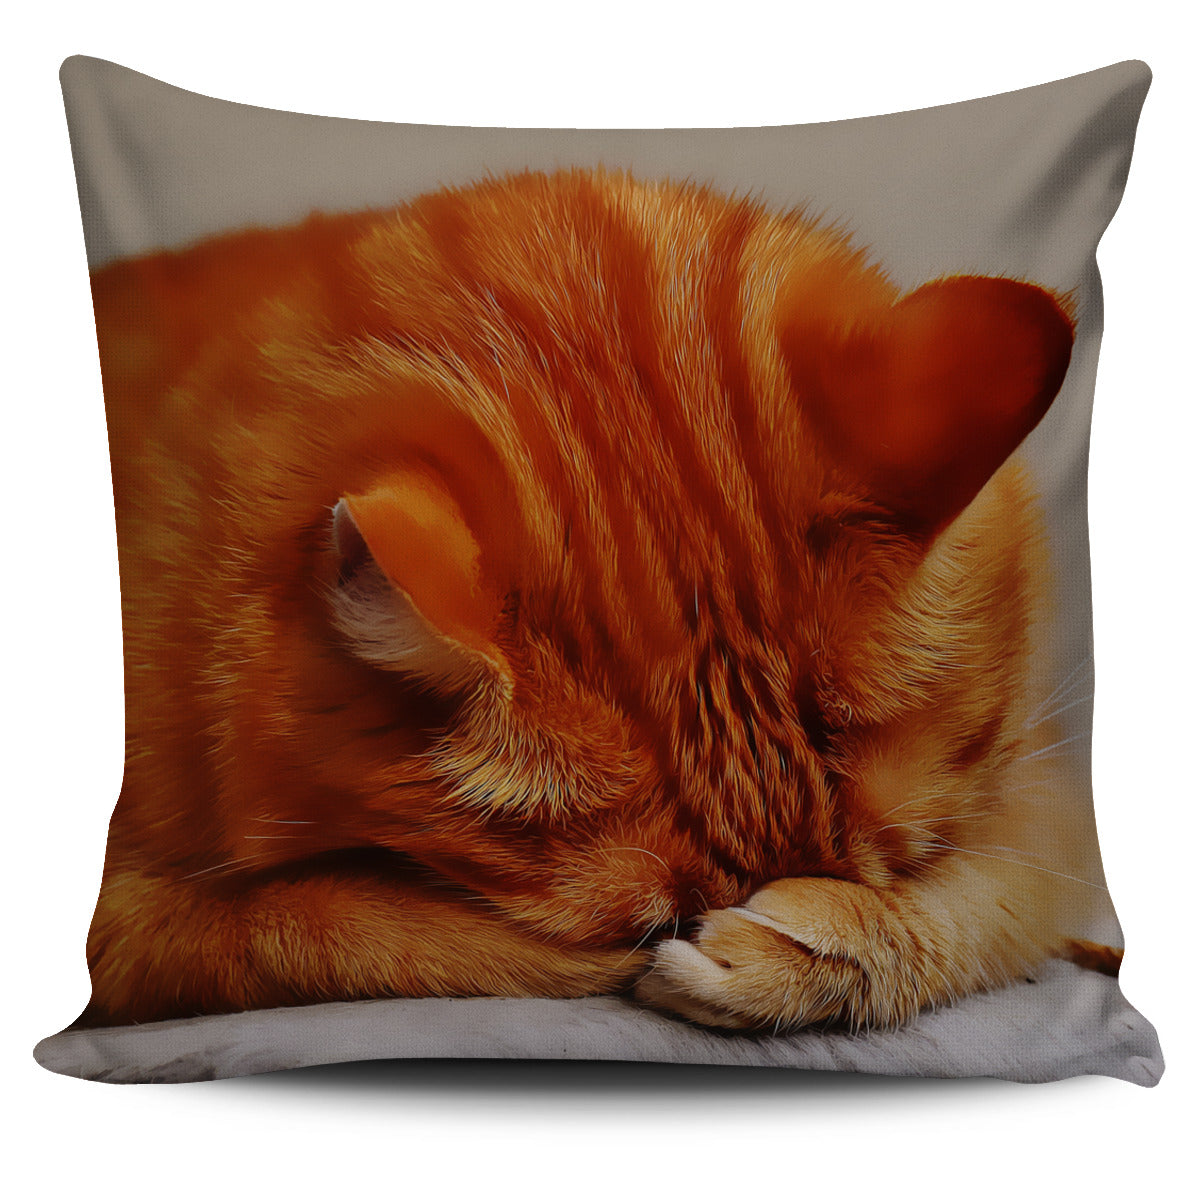 Pillow Cover Ginger Cat Sleeping Painted